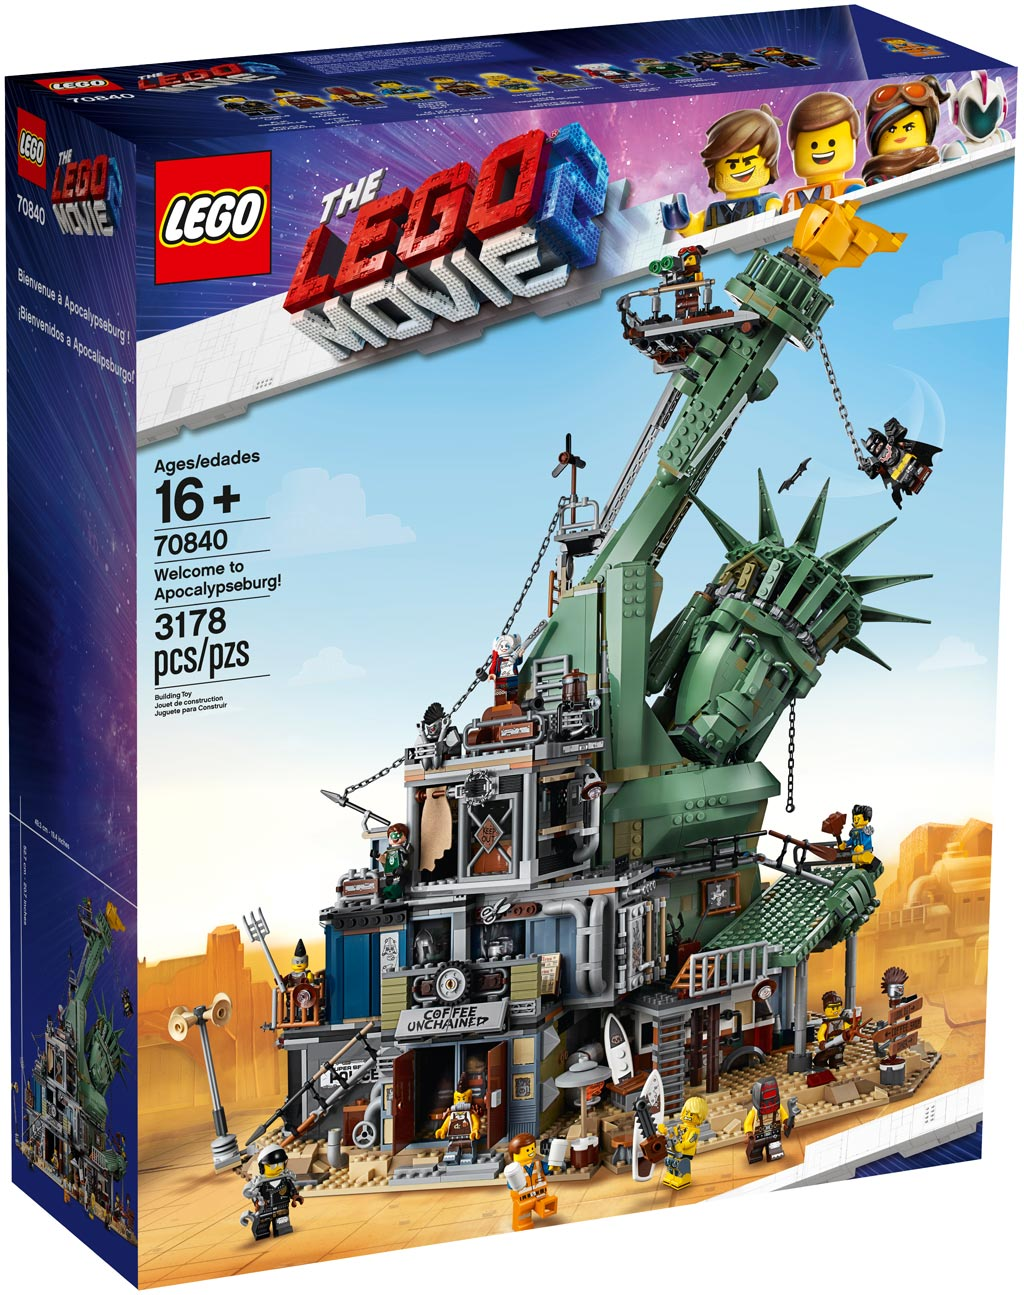 the-lego-movie-2-welcome-to-apocalypseburg-70840-box-front-2019 zusammengebaut.com